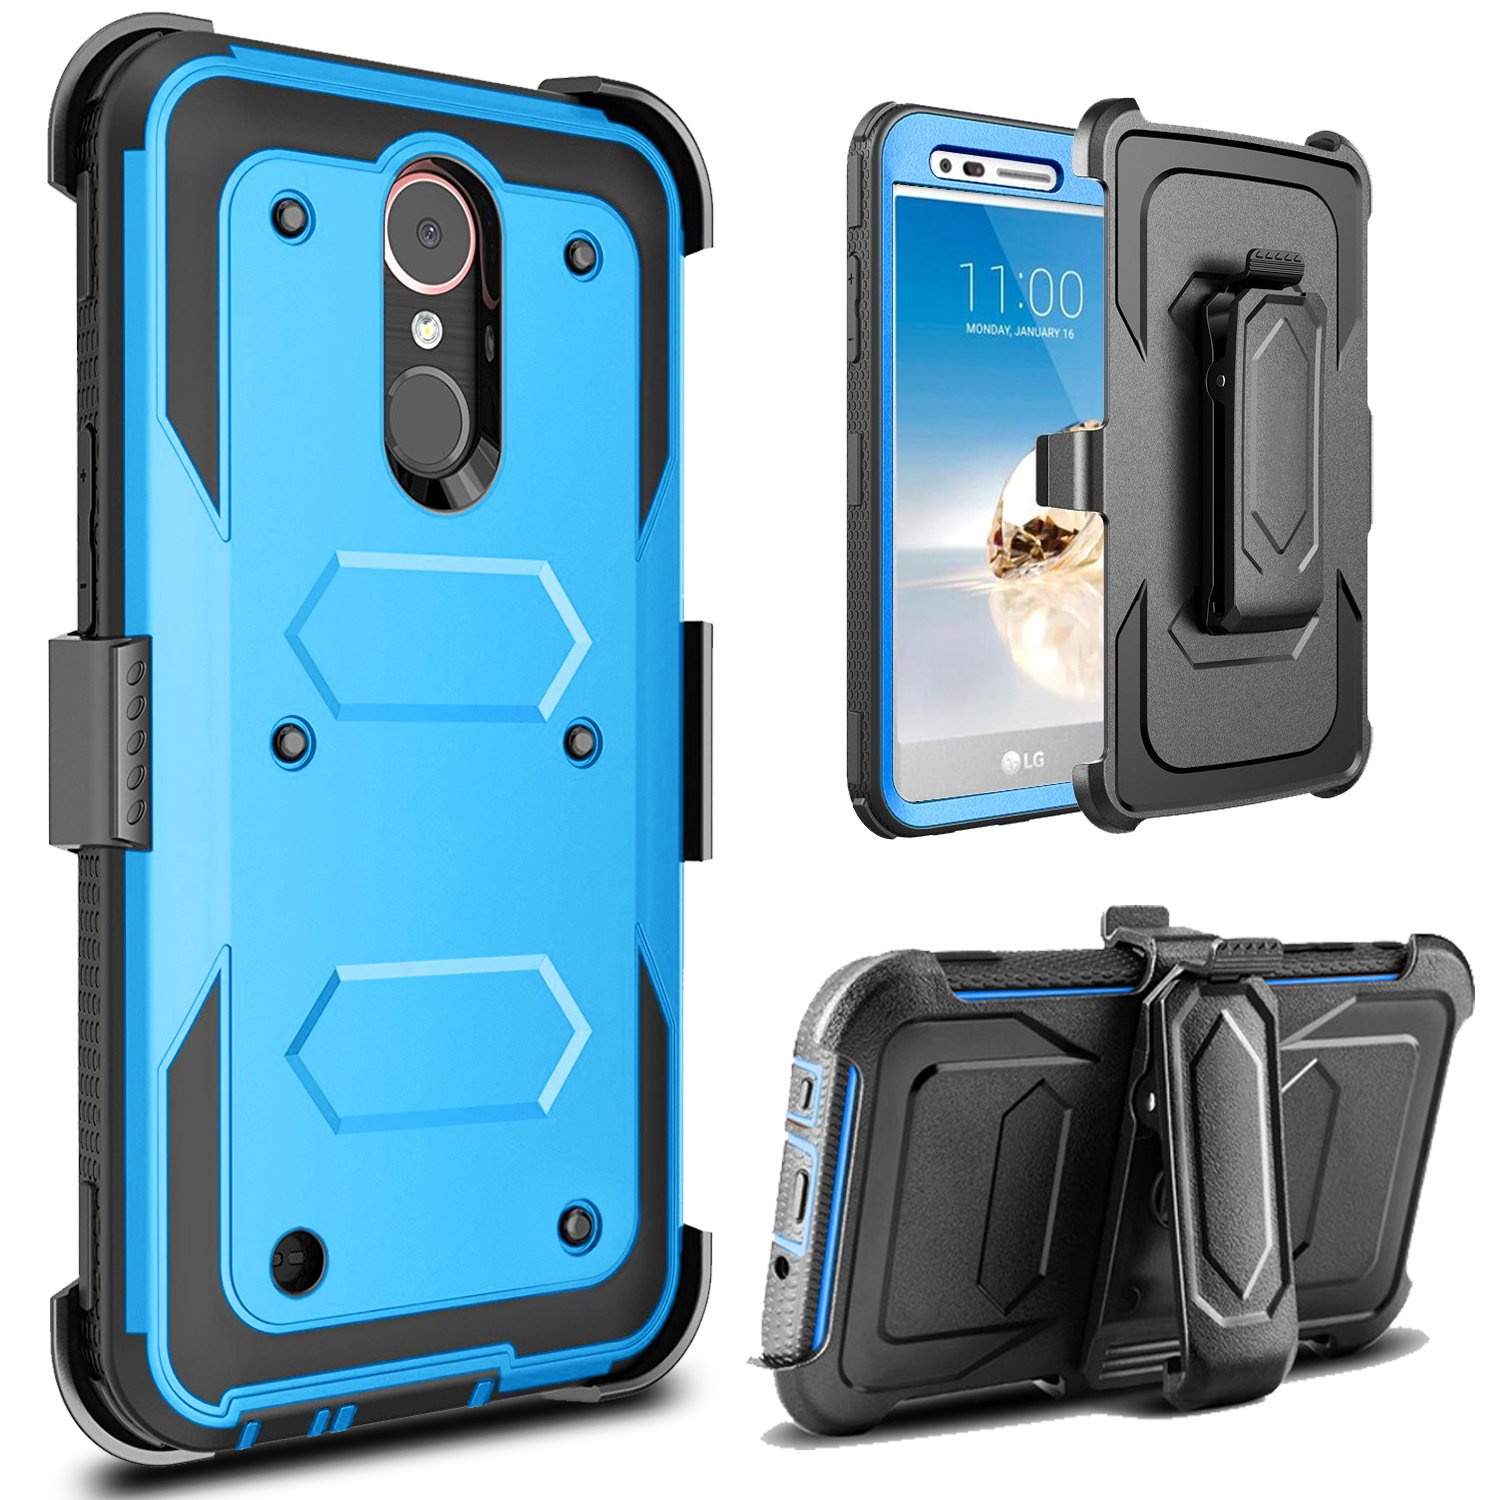 J.west LG Aristo Case, LG Phoenix 3 Case, LG K8 2017 Case, LG Fortune Case, Full-Body Rugged Belt Clip Holster Kickstand Case Without Built-in Screen Protector for LG LV3, Blue